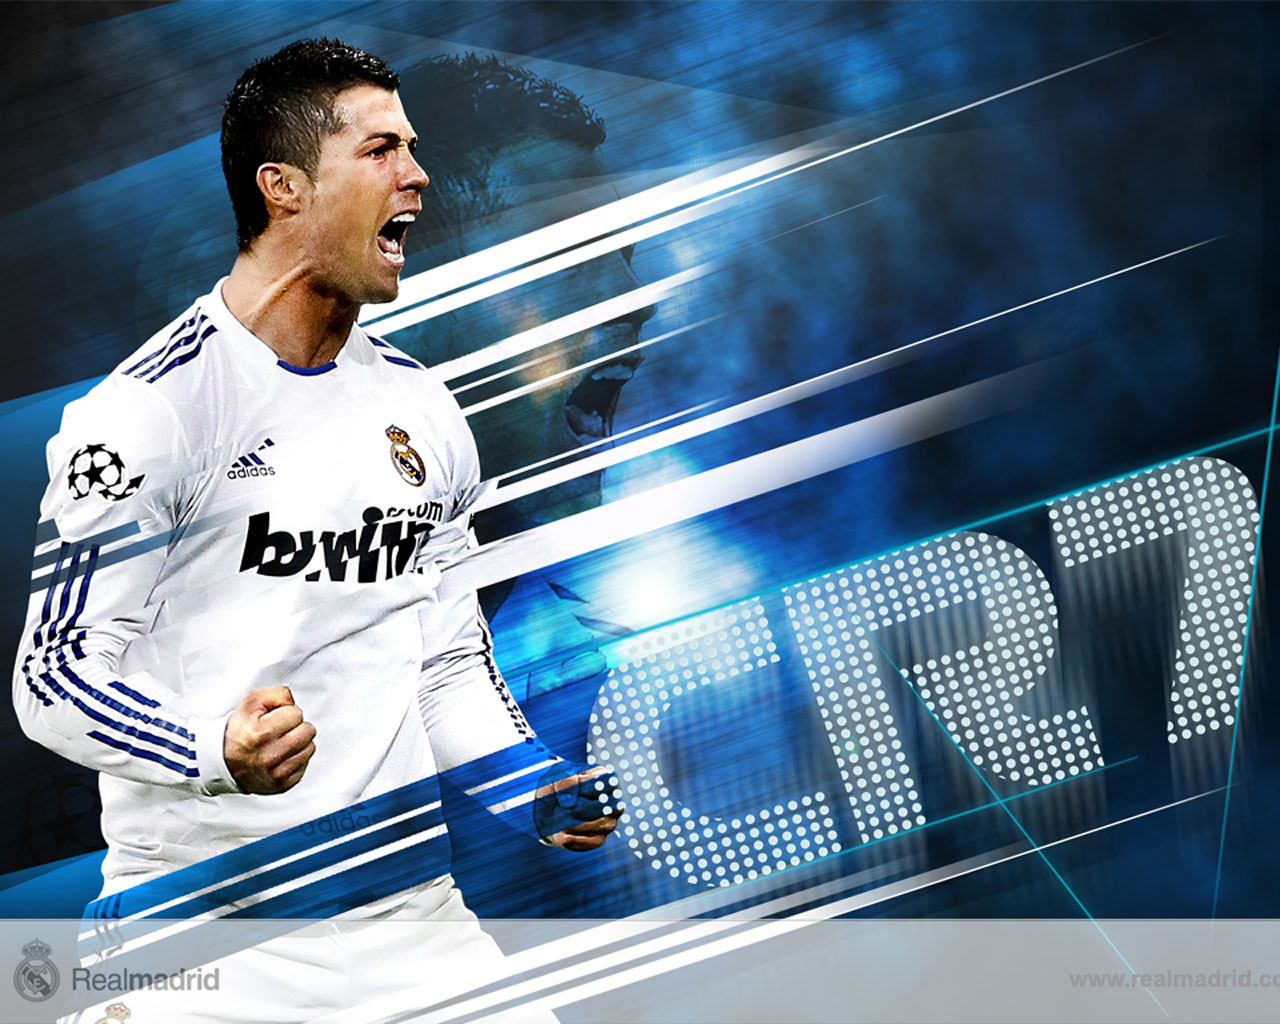 cristiano ronaldo portugal hd wallpapers